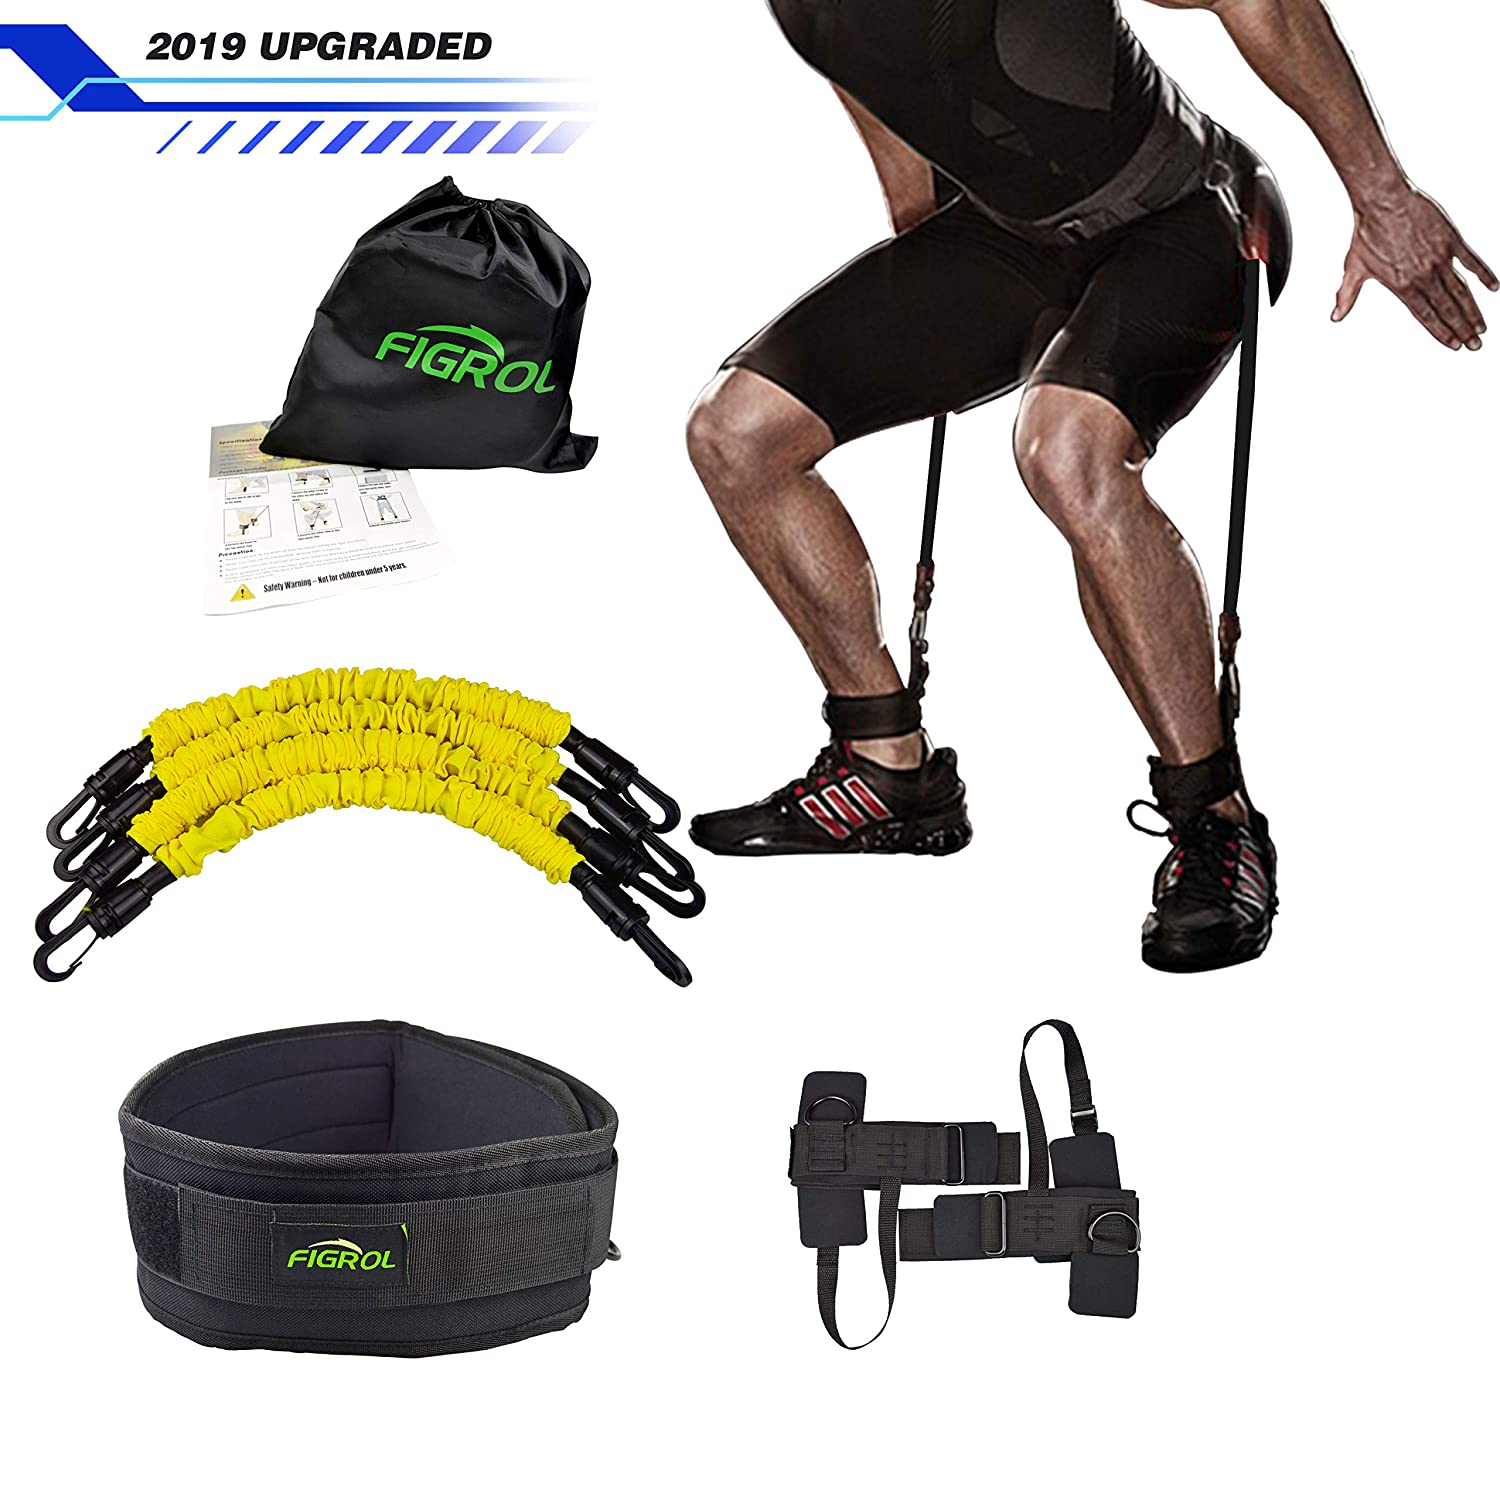 【大放出セール】 (Jump Trainers) Workout - FIGROL Trainer Resistance Bands Speed Football Agility Training Strength Ankle Straps Jump Trainer with 4 Exercise & Fitness Bands-for Workout Football Basketball Taekwondo Yoga Boxing B075HD7YCM Jump Trainers, jsparadise:110fa47f --- arianechie.dominiotemporario.com